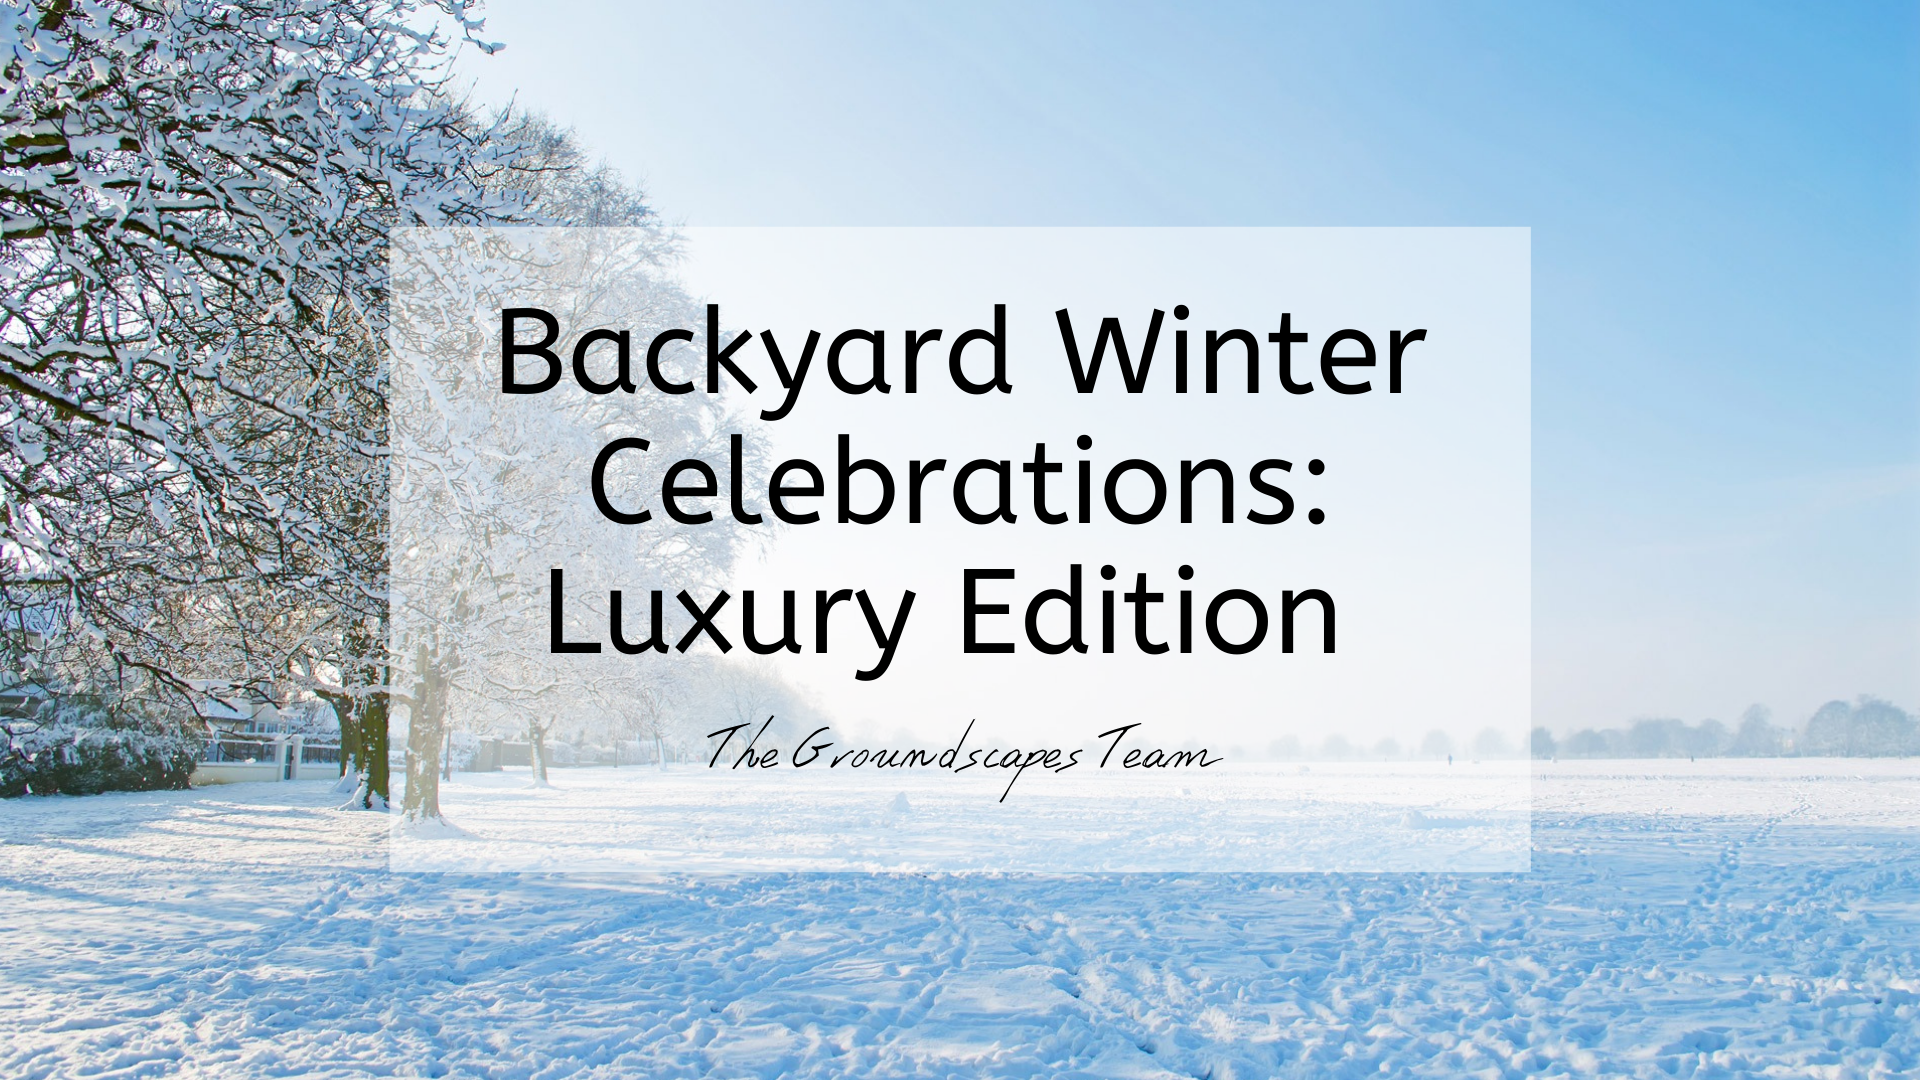 Backyard Winter Celebrations: Luxury Edition